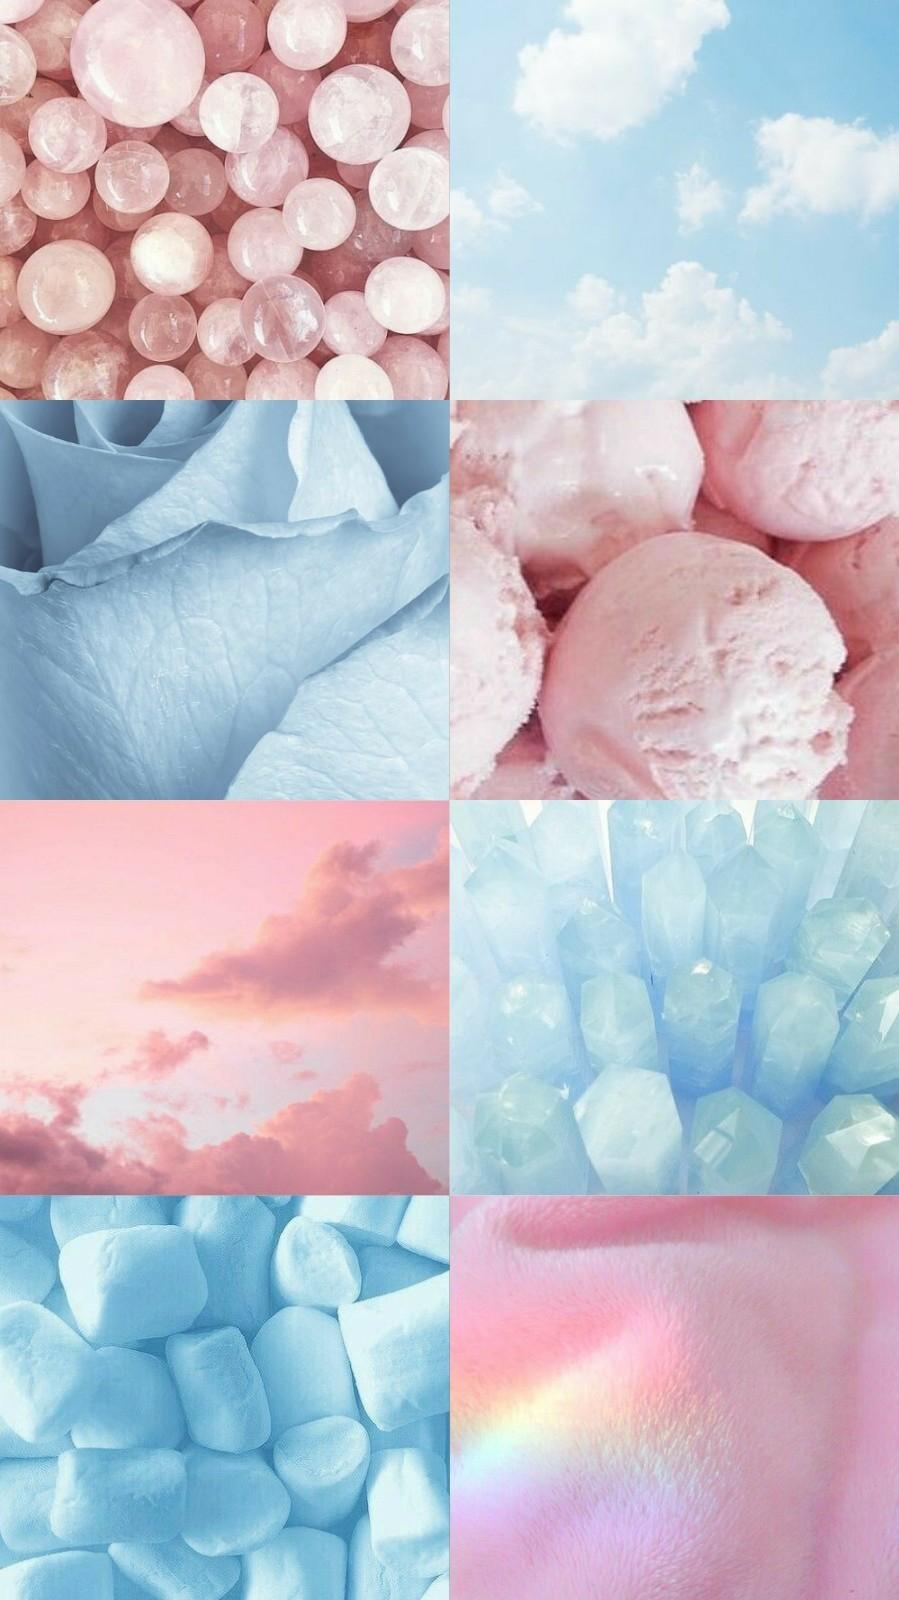 Aesthetic Pastel Wallpapers - Wallpaper Cave